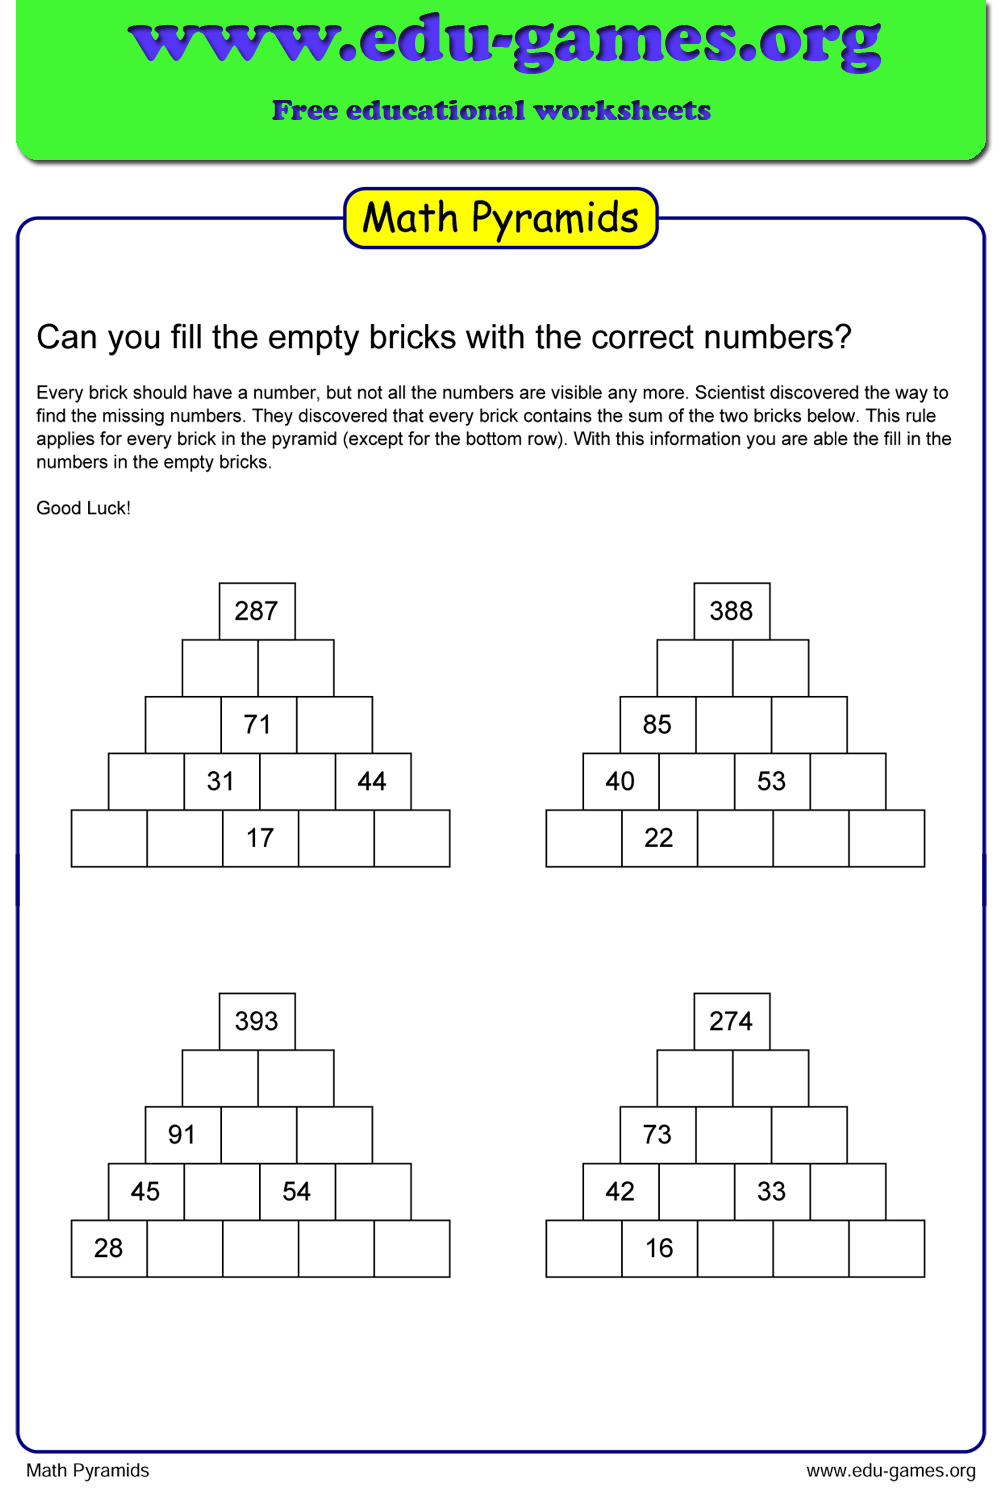 Every Brick Contains The Sum Of The Two Bricks Below This Rule Applies For Every Brick In The Pyramid Except For The Bot Math Pyramids Educational Worksheets